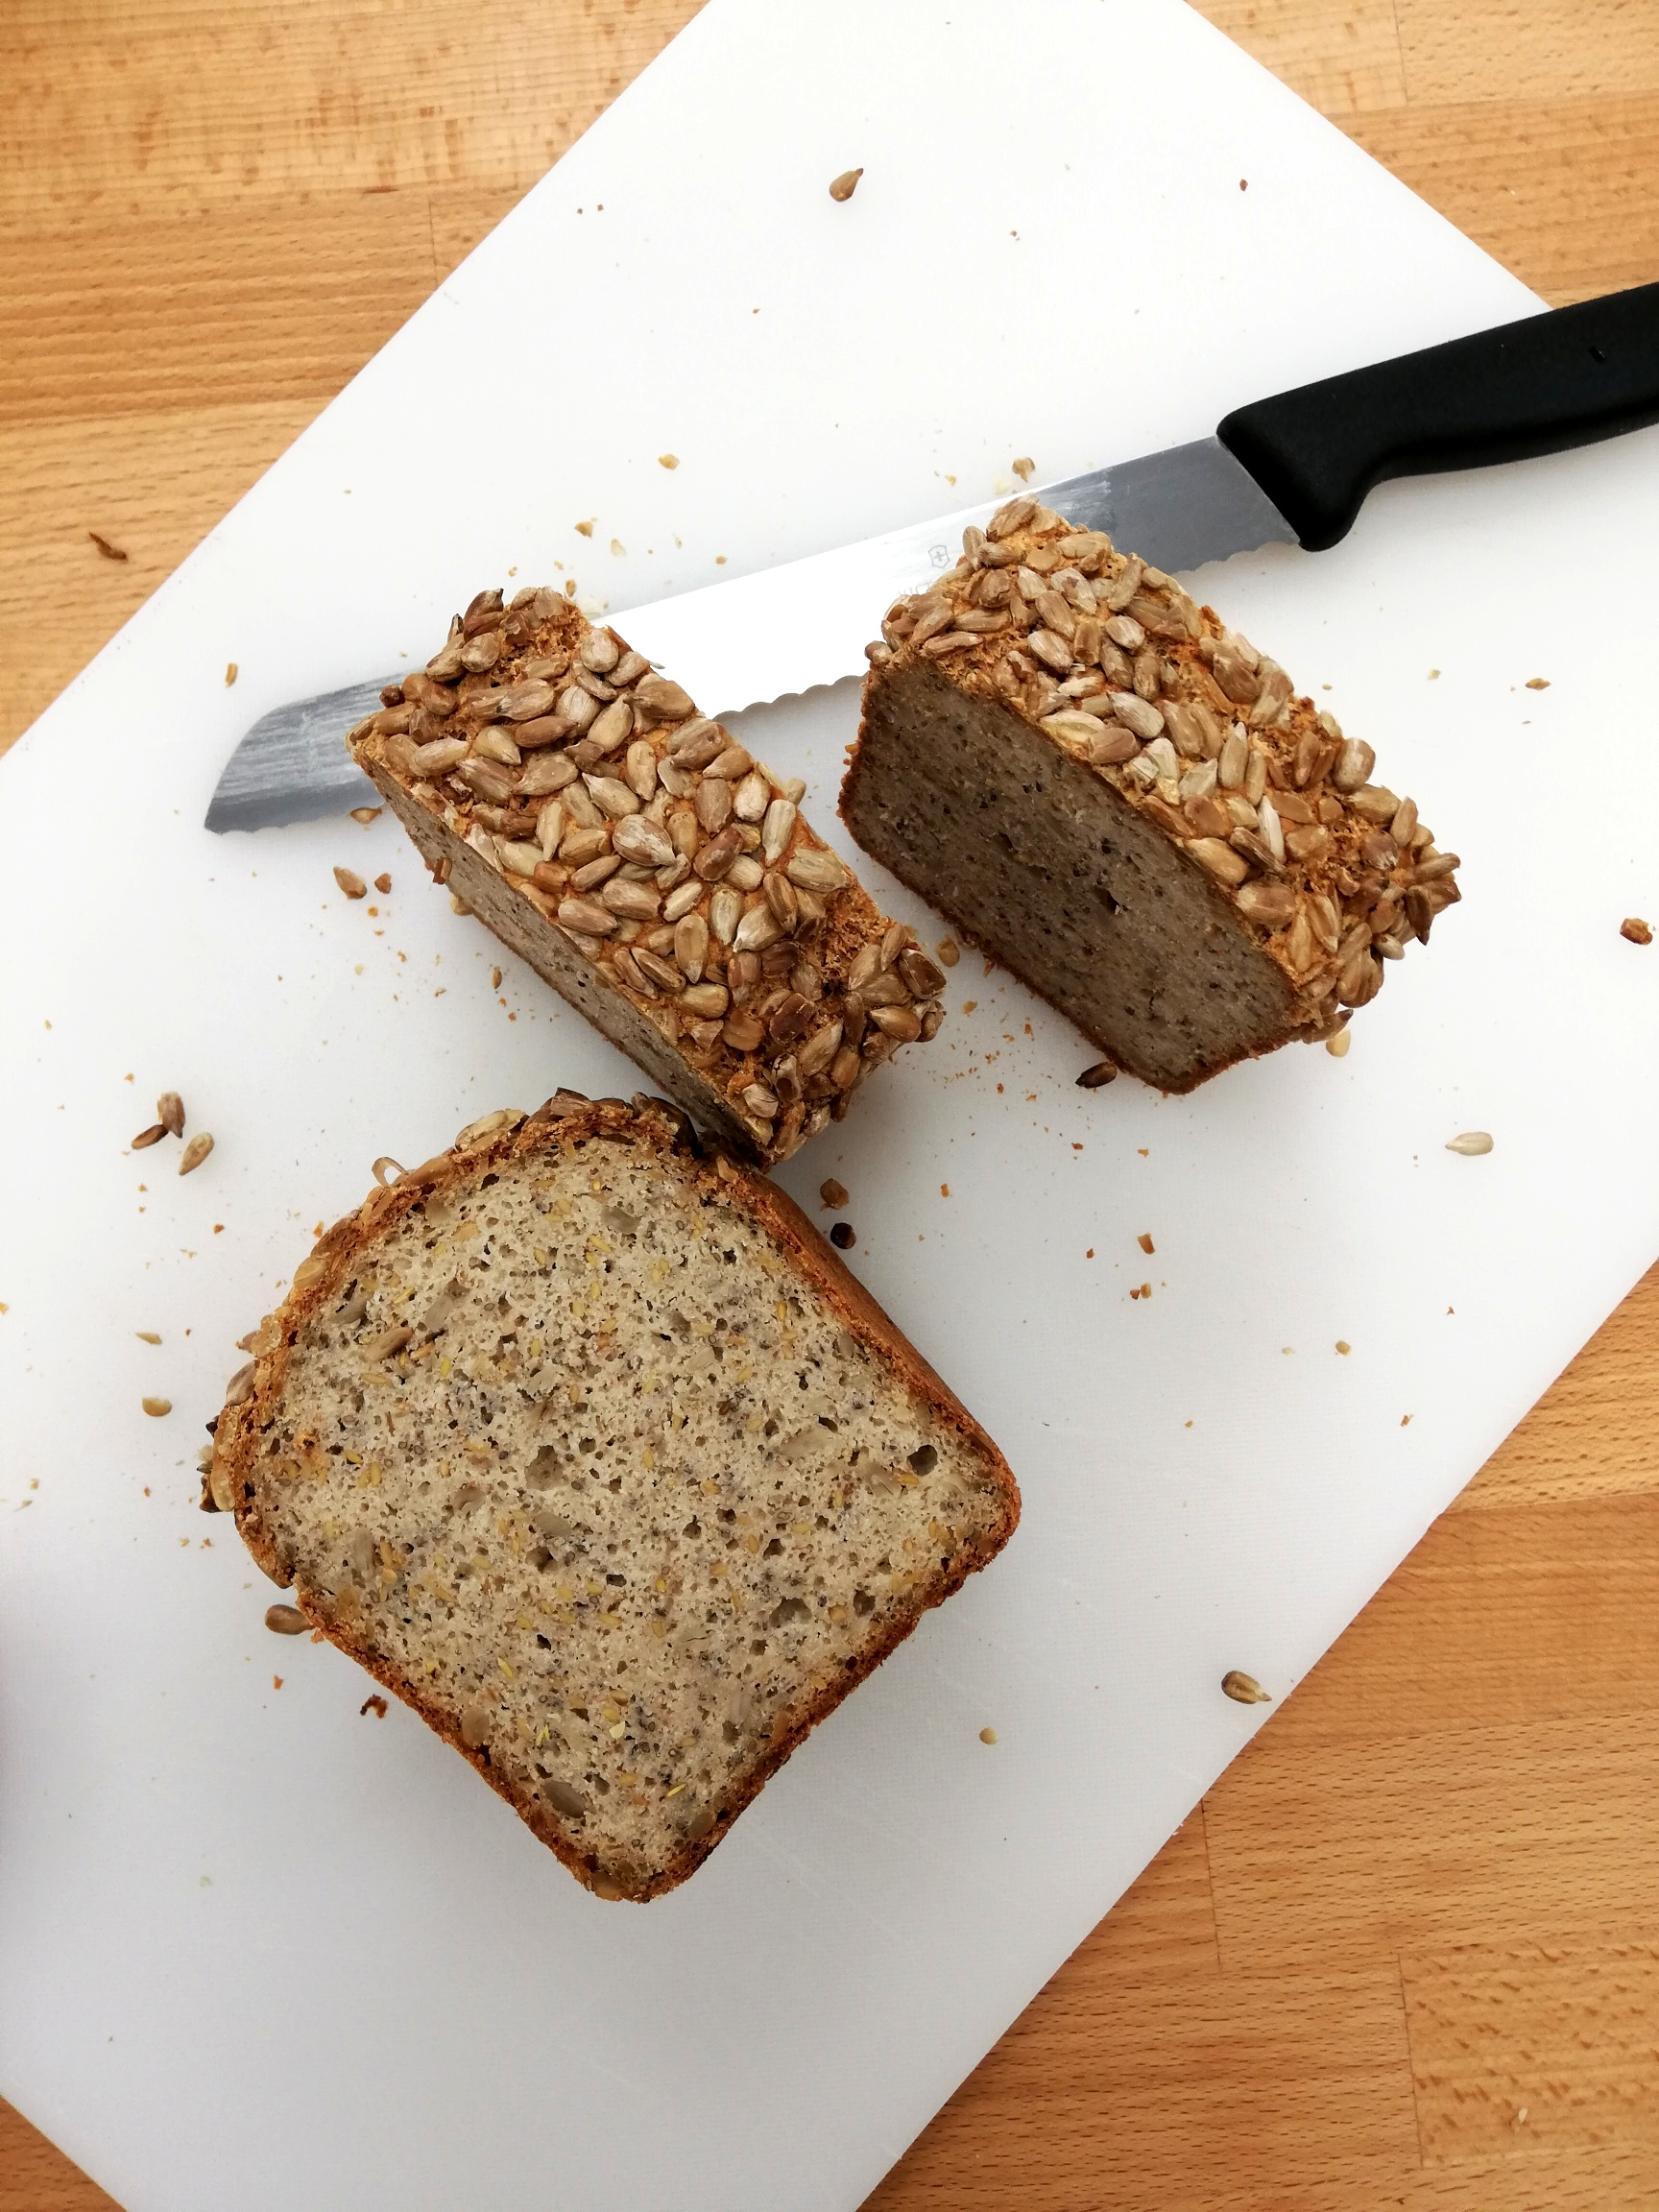 (FRI) Buckwheat loaf